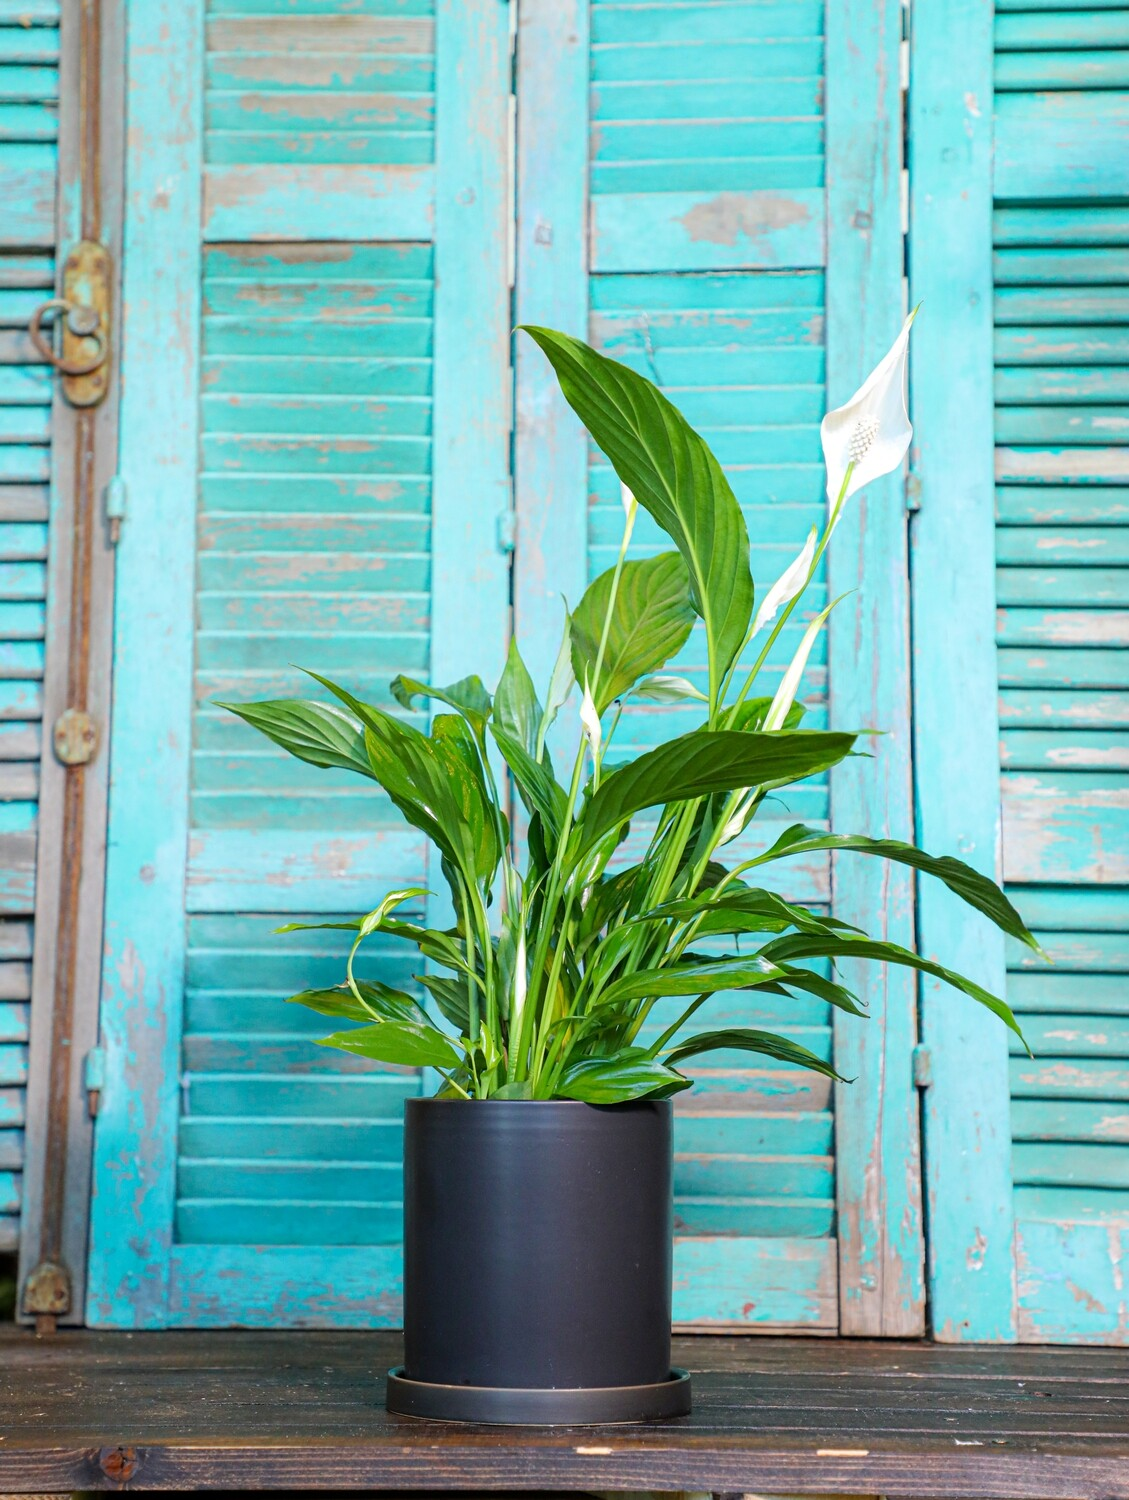 Spathiphyllum wallisii (Plant) - Nature by Marc Beyrouthy